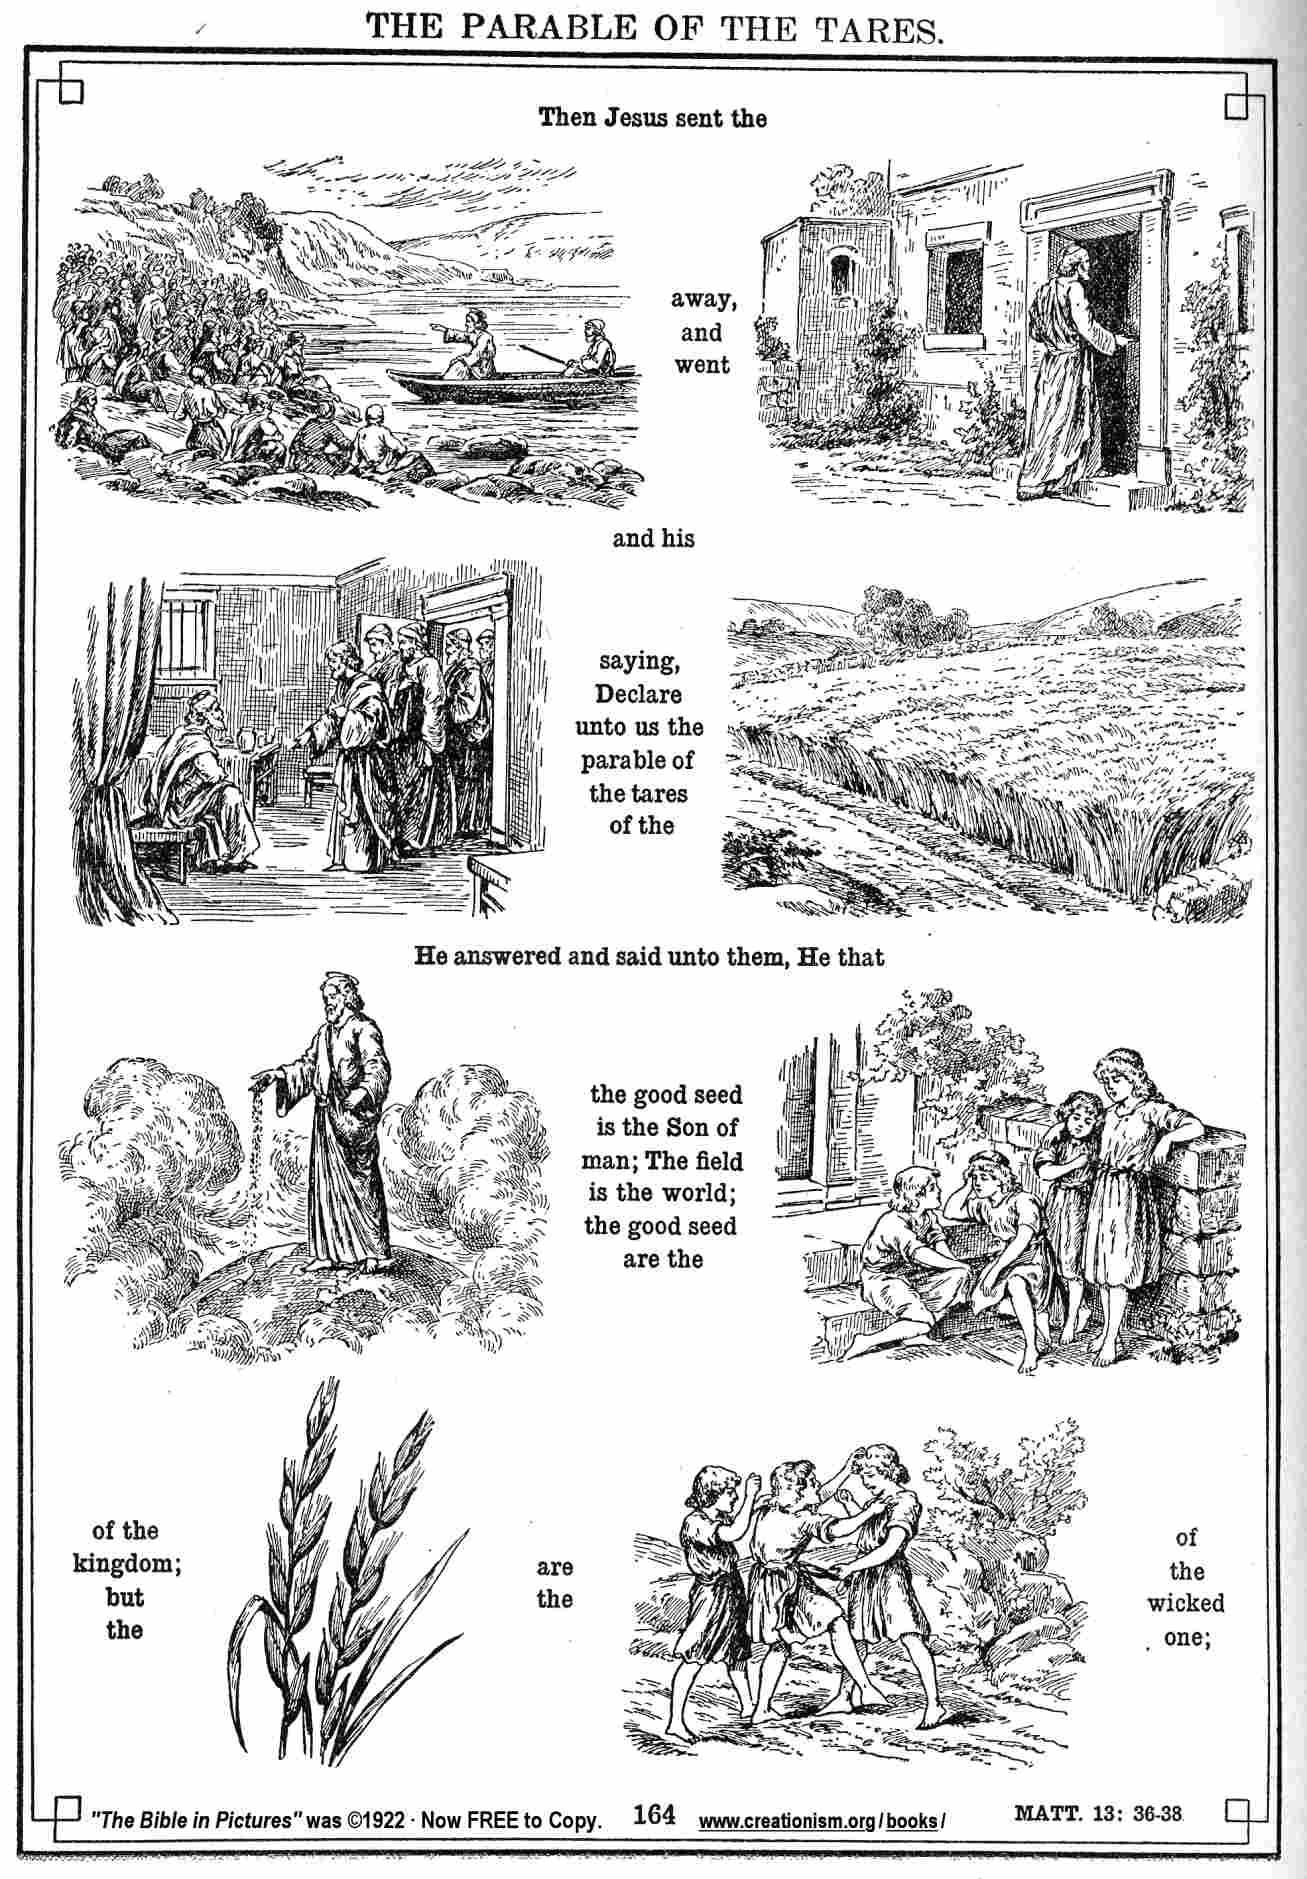 Cut And Paste Parable Of The Wheat And Tares